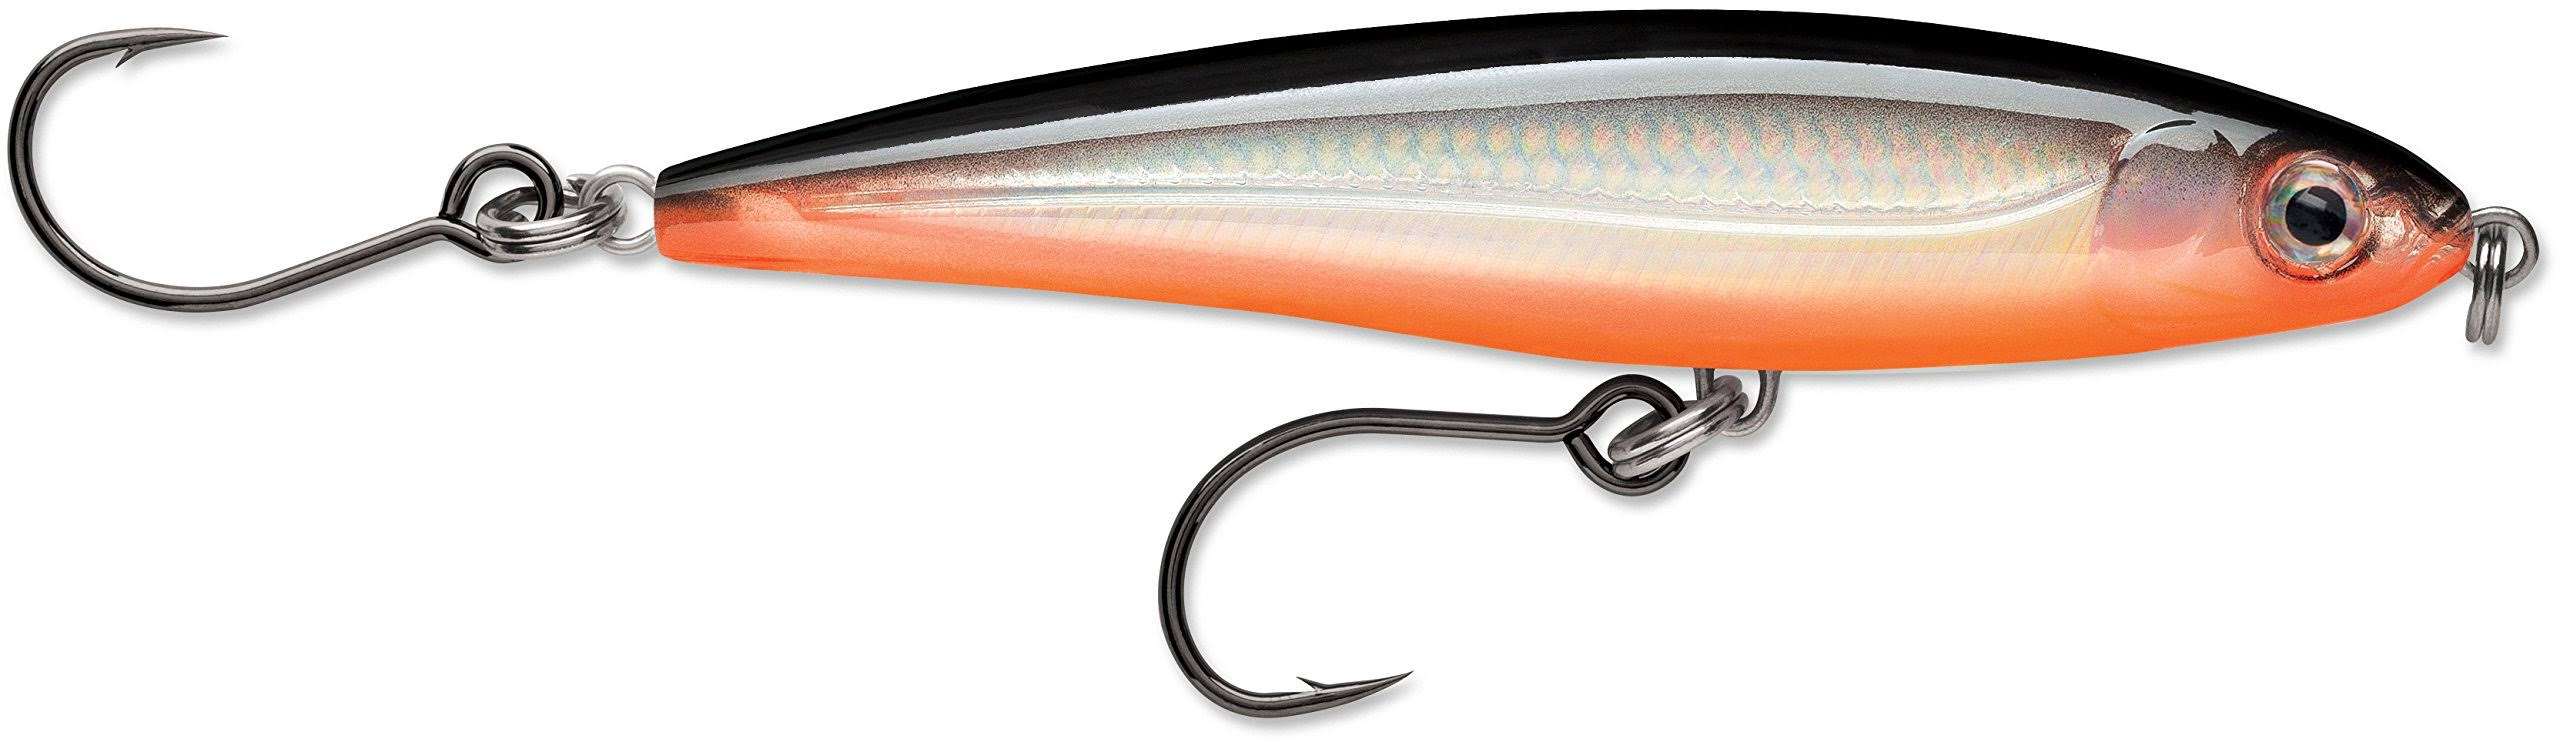 Rapala X-Rap Twitchin' Minnow Saltwater Hard Bait - Red Belly, 4""